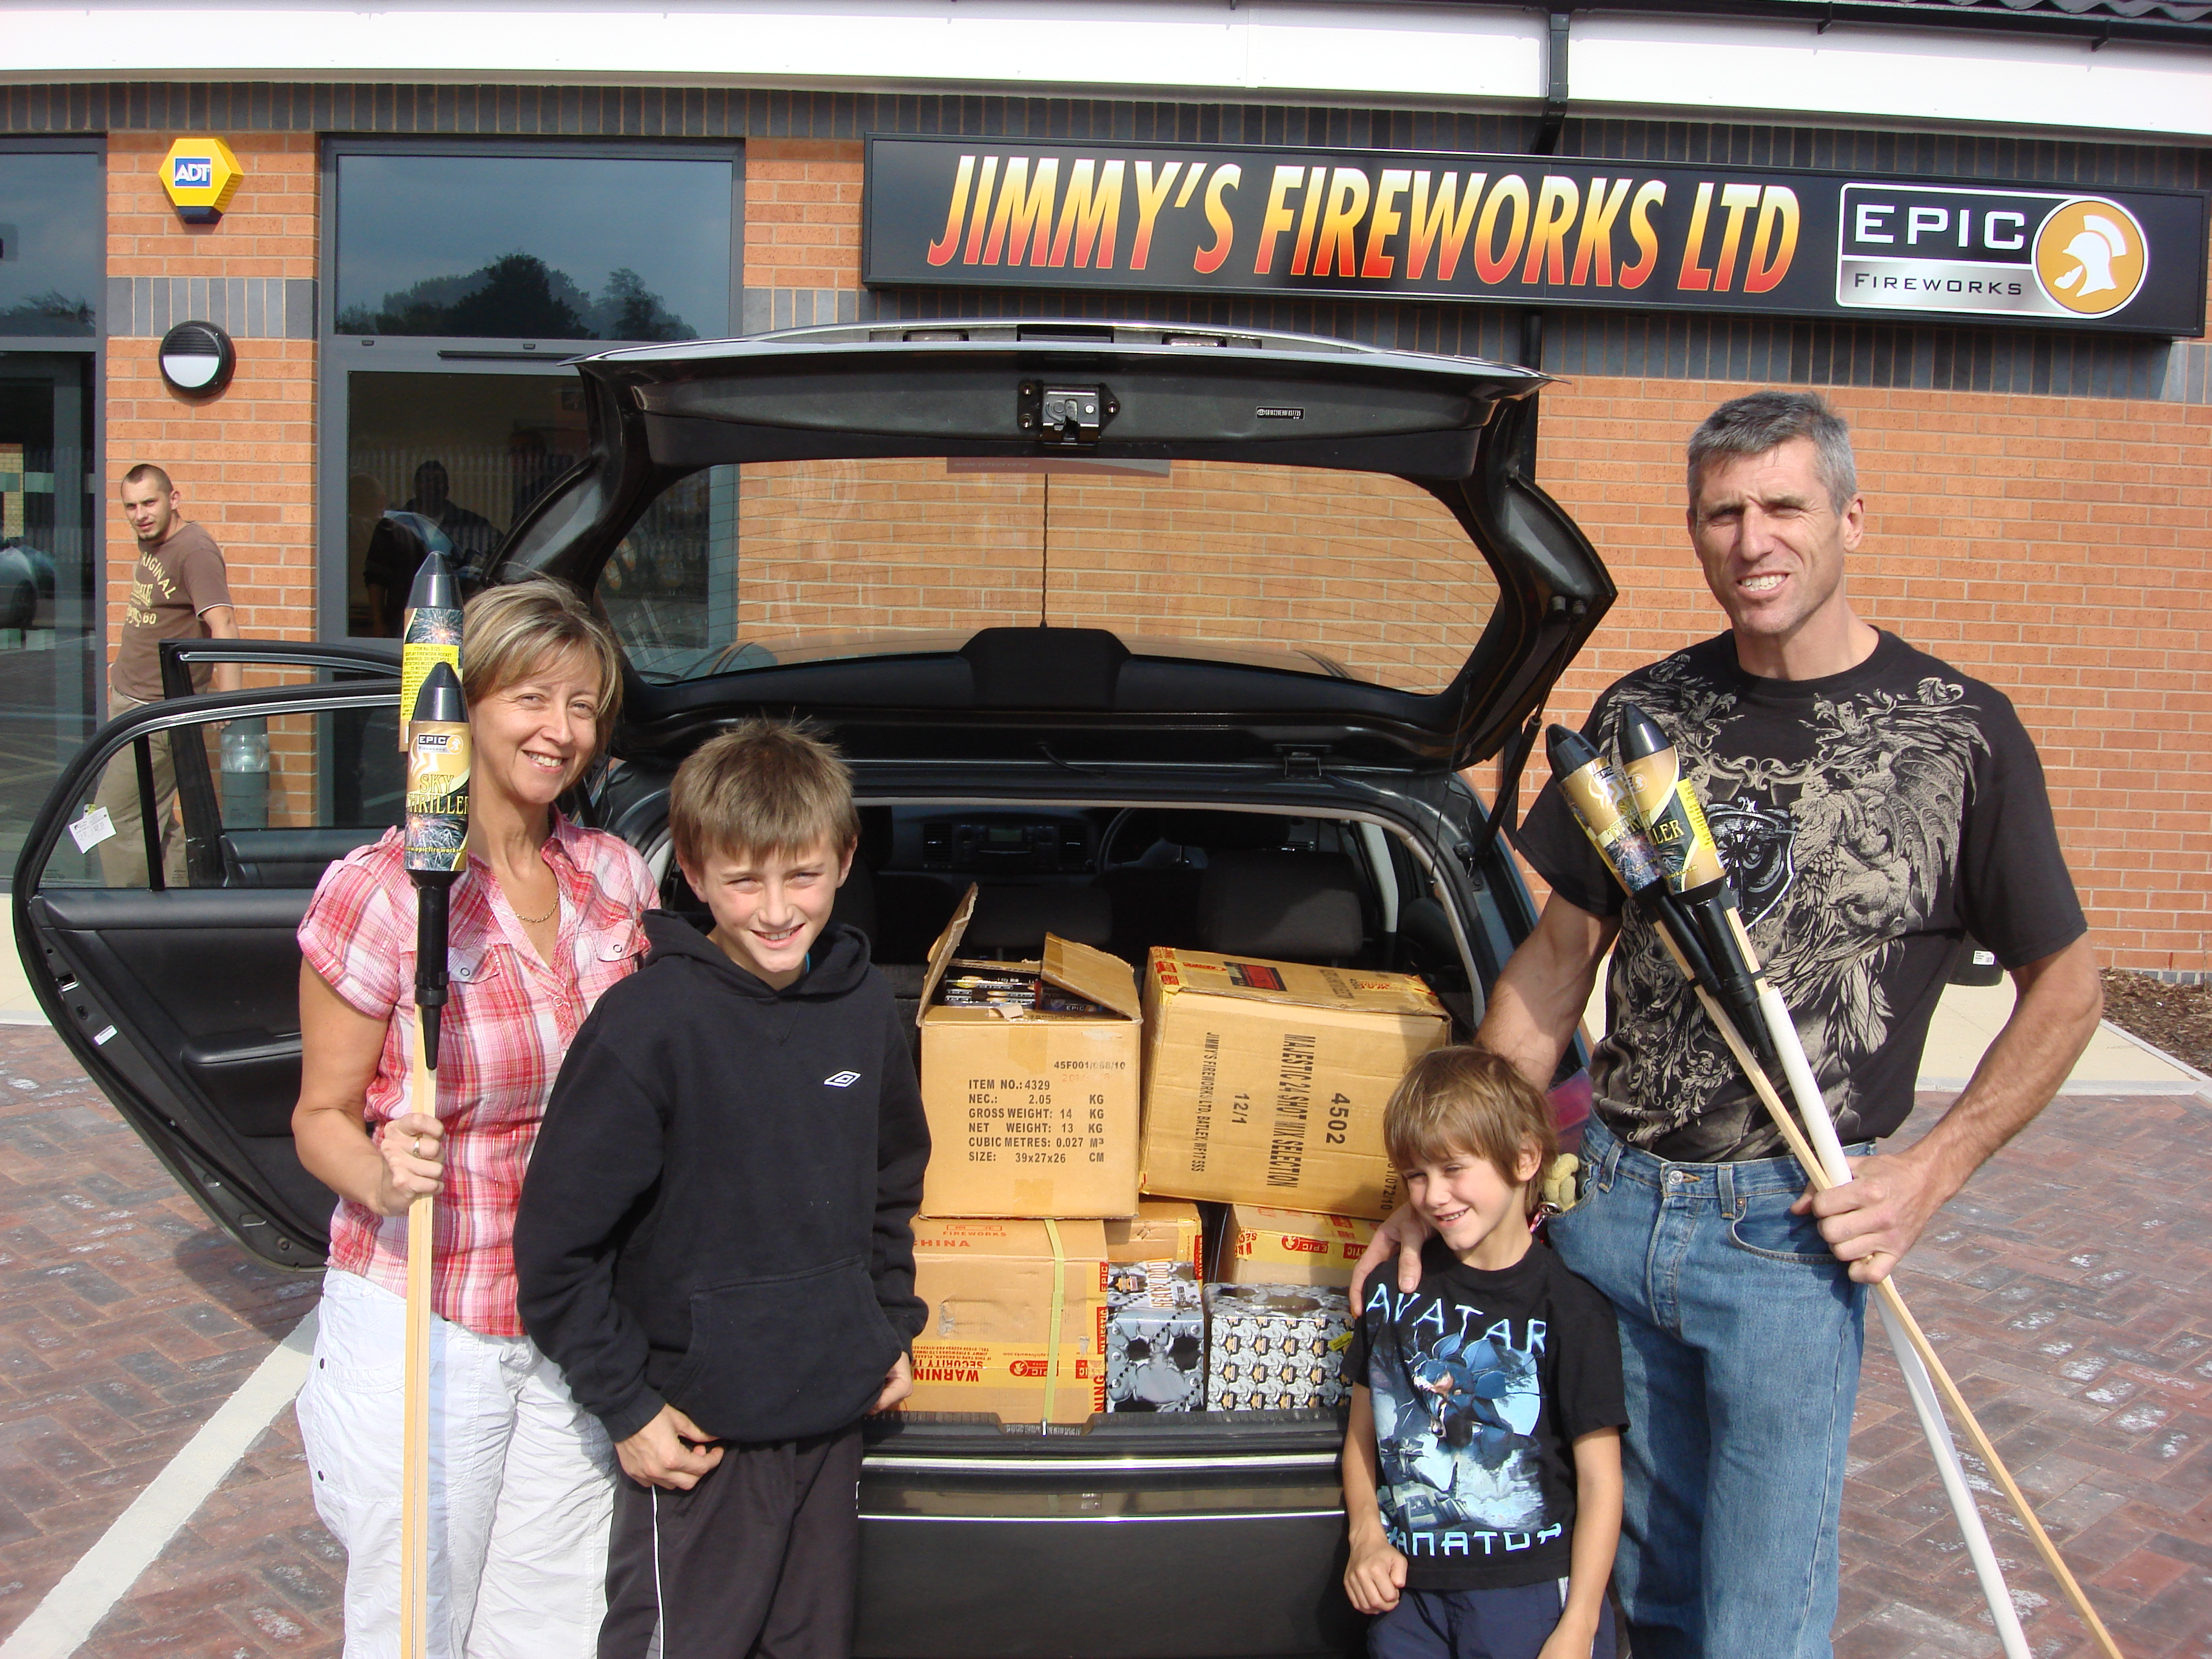 Epic Fireworks - Family Day Out At The Biggest and Best Fireworks Shop In The Country